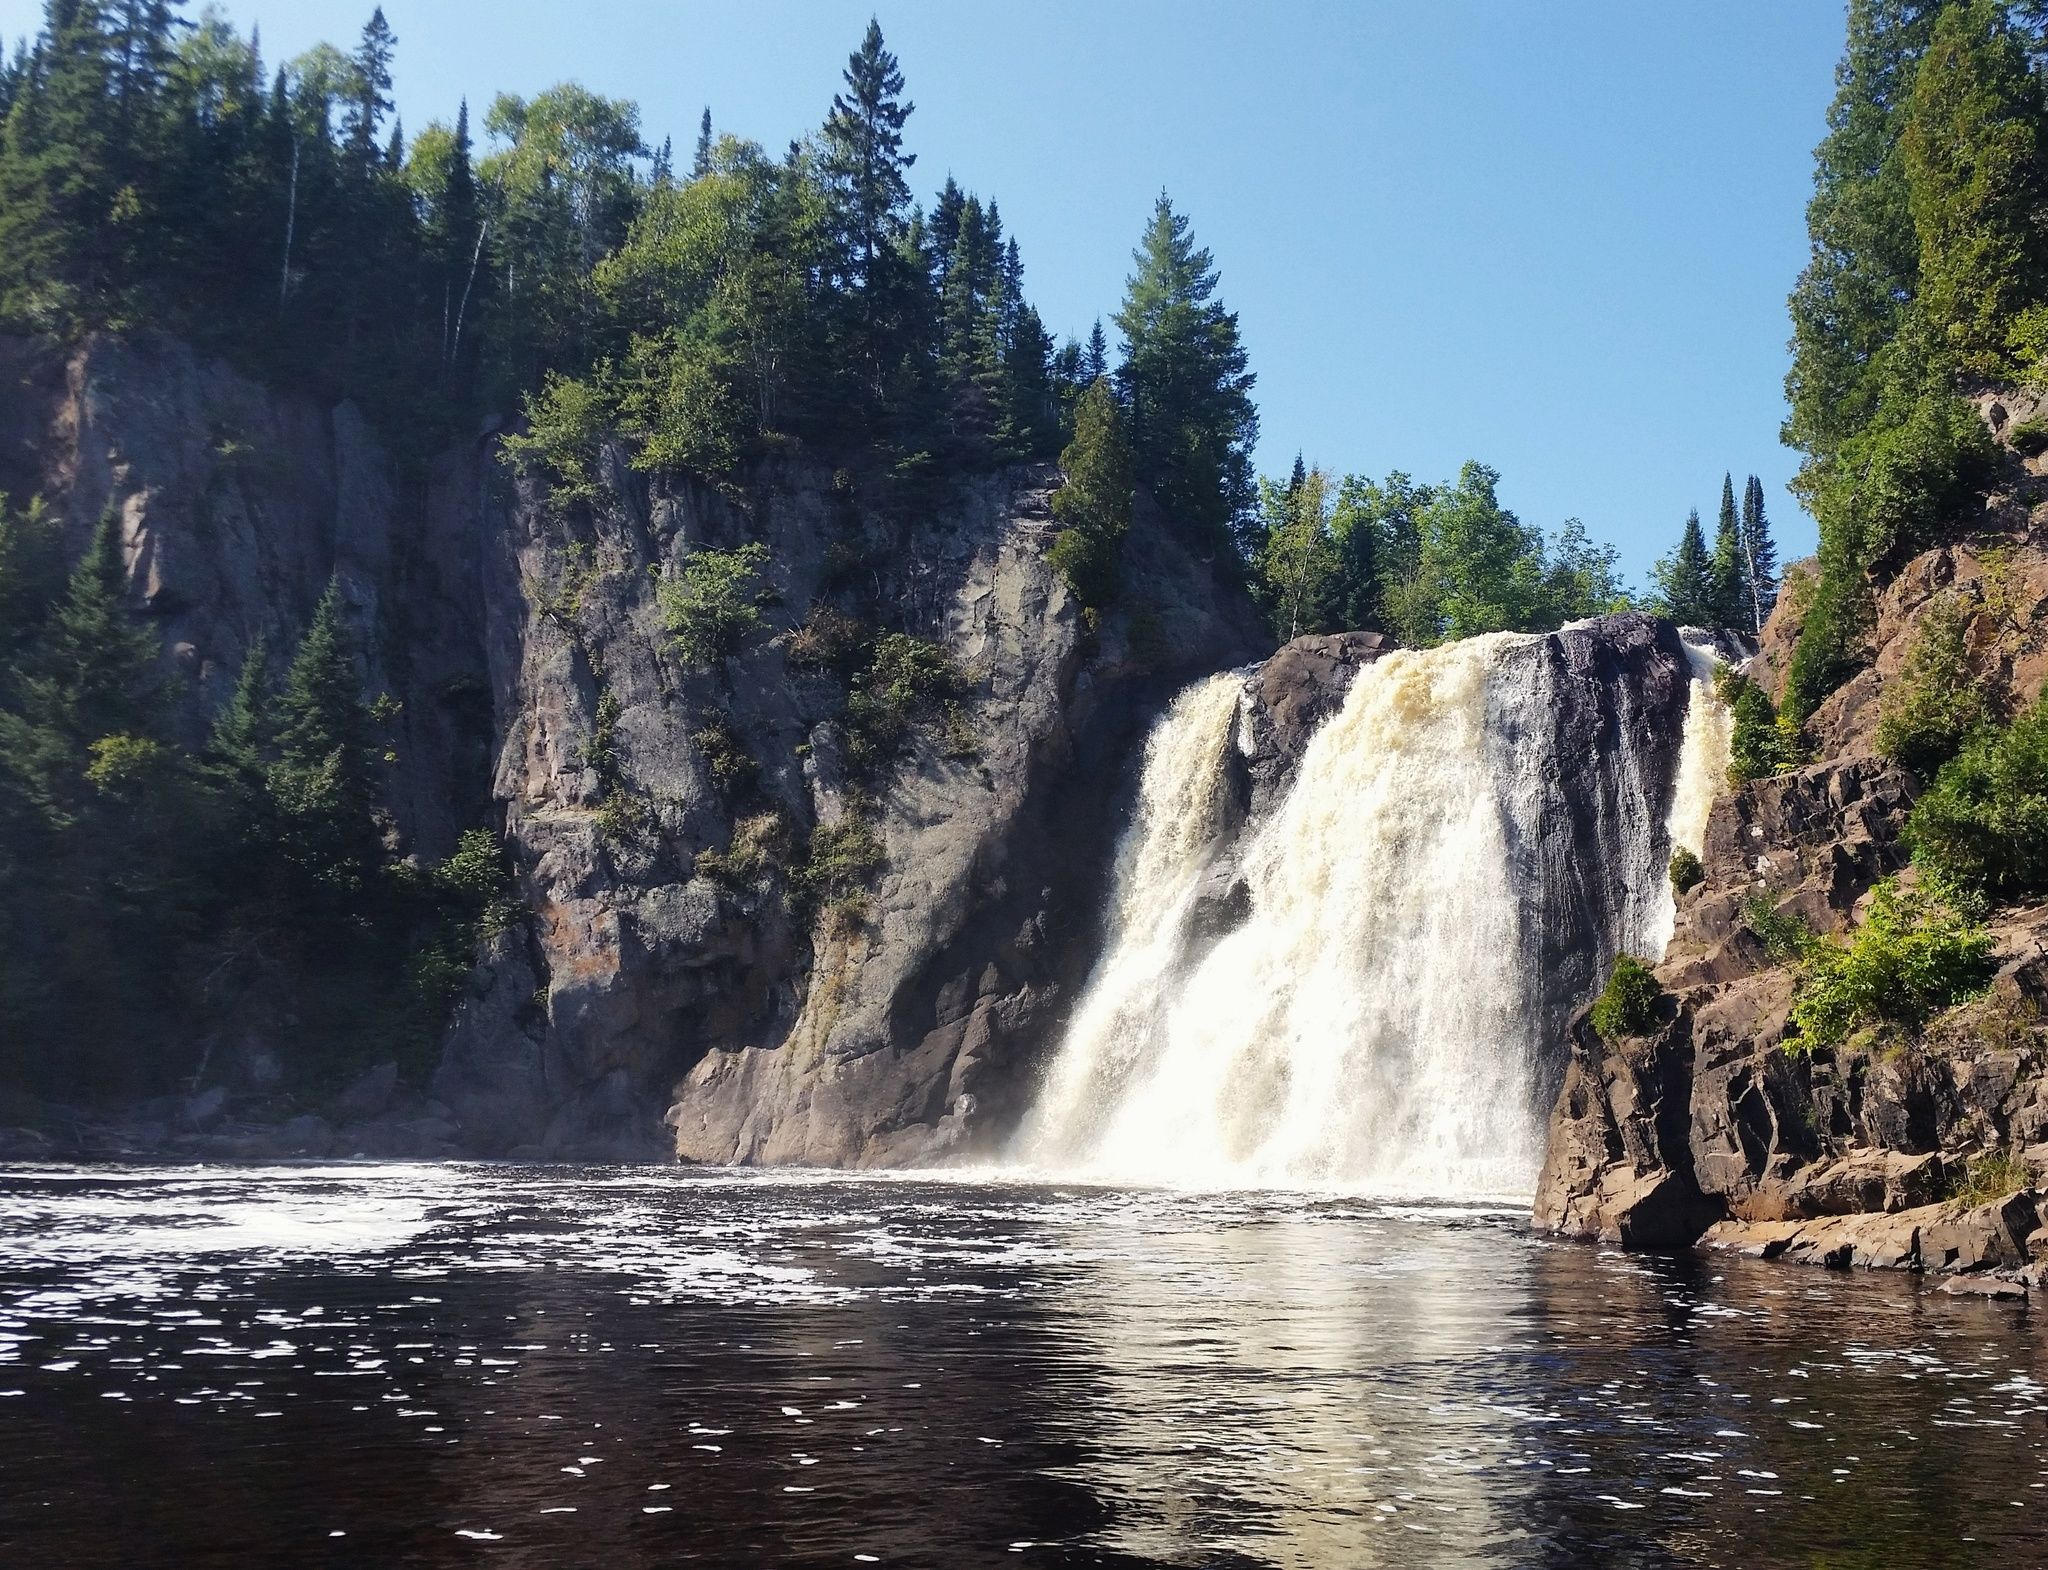 Best Trails in Tettegouche State Park - Minnesota | AllTrails